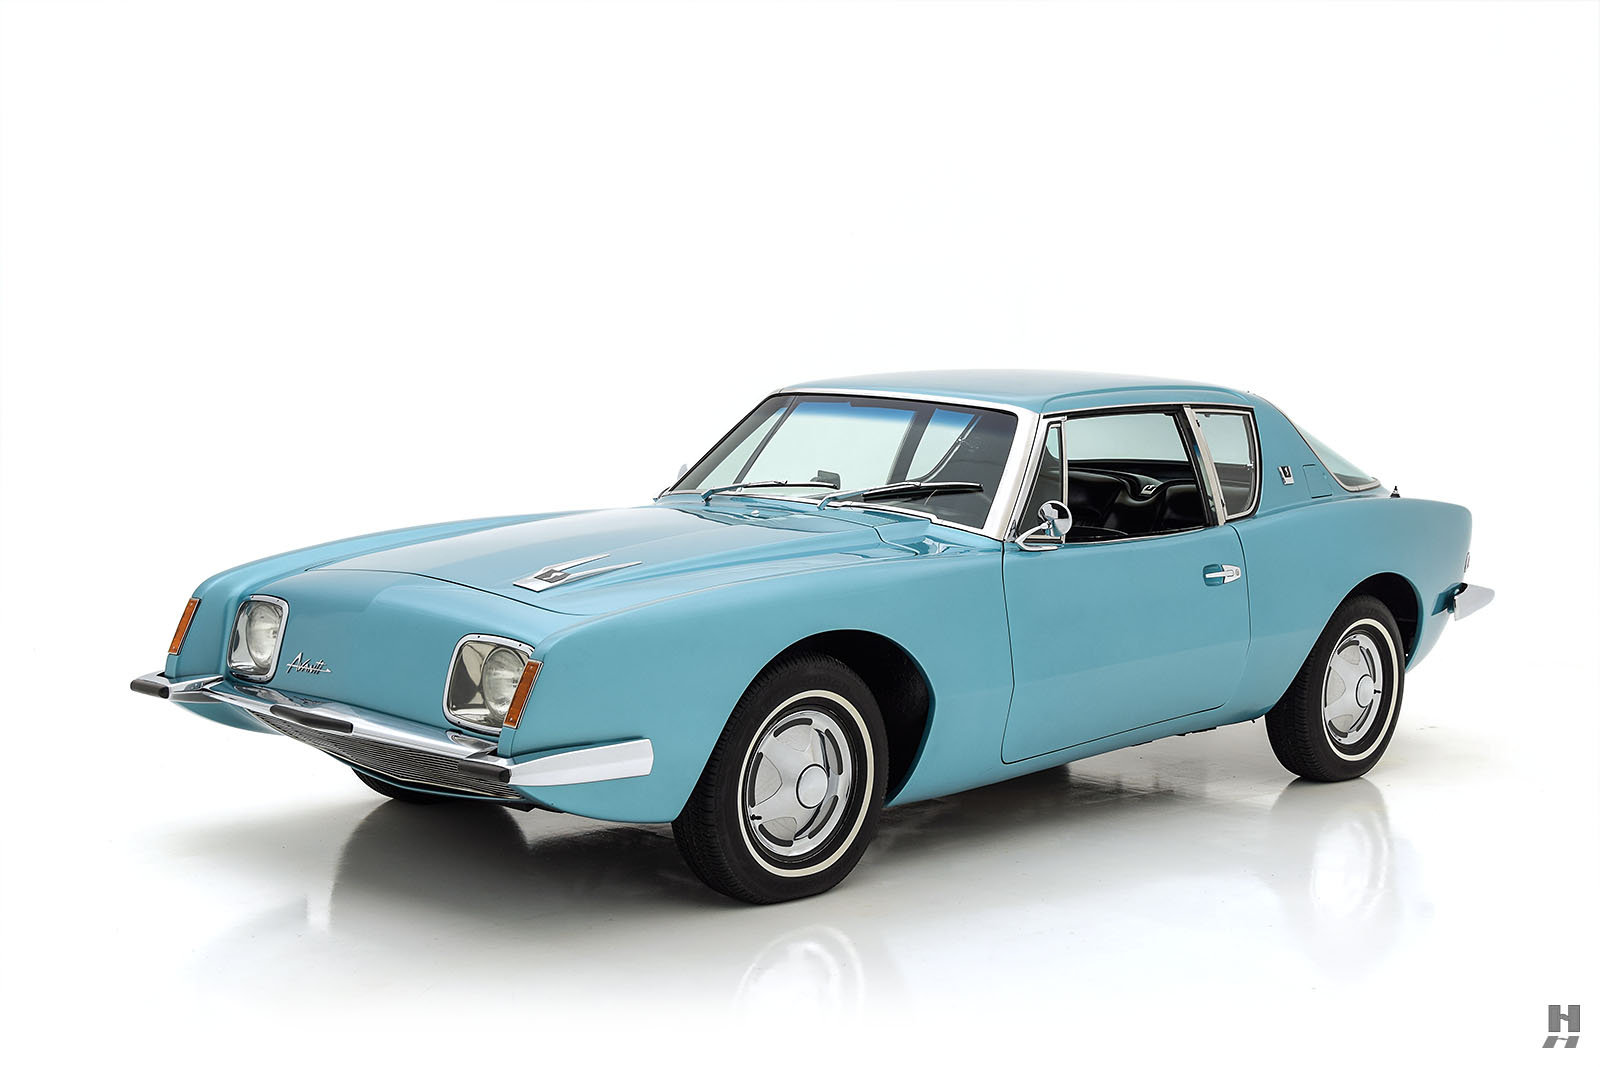 1964 STUDEBAKER AVANTI For Sale (picture 1 of 6)